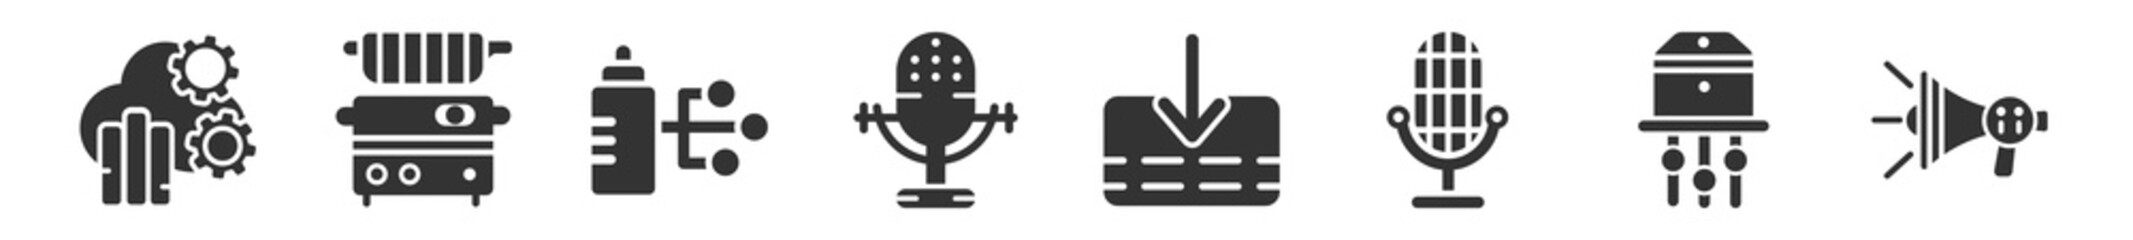 Obraz filled set of technology icons. glyph vector icons such as cloud analysis, fryer, wi connection, big old microphone, receive, modern horn. vector illustration. - fototapety do salonu